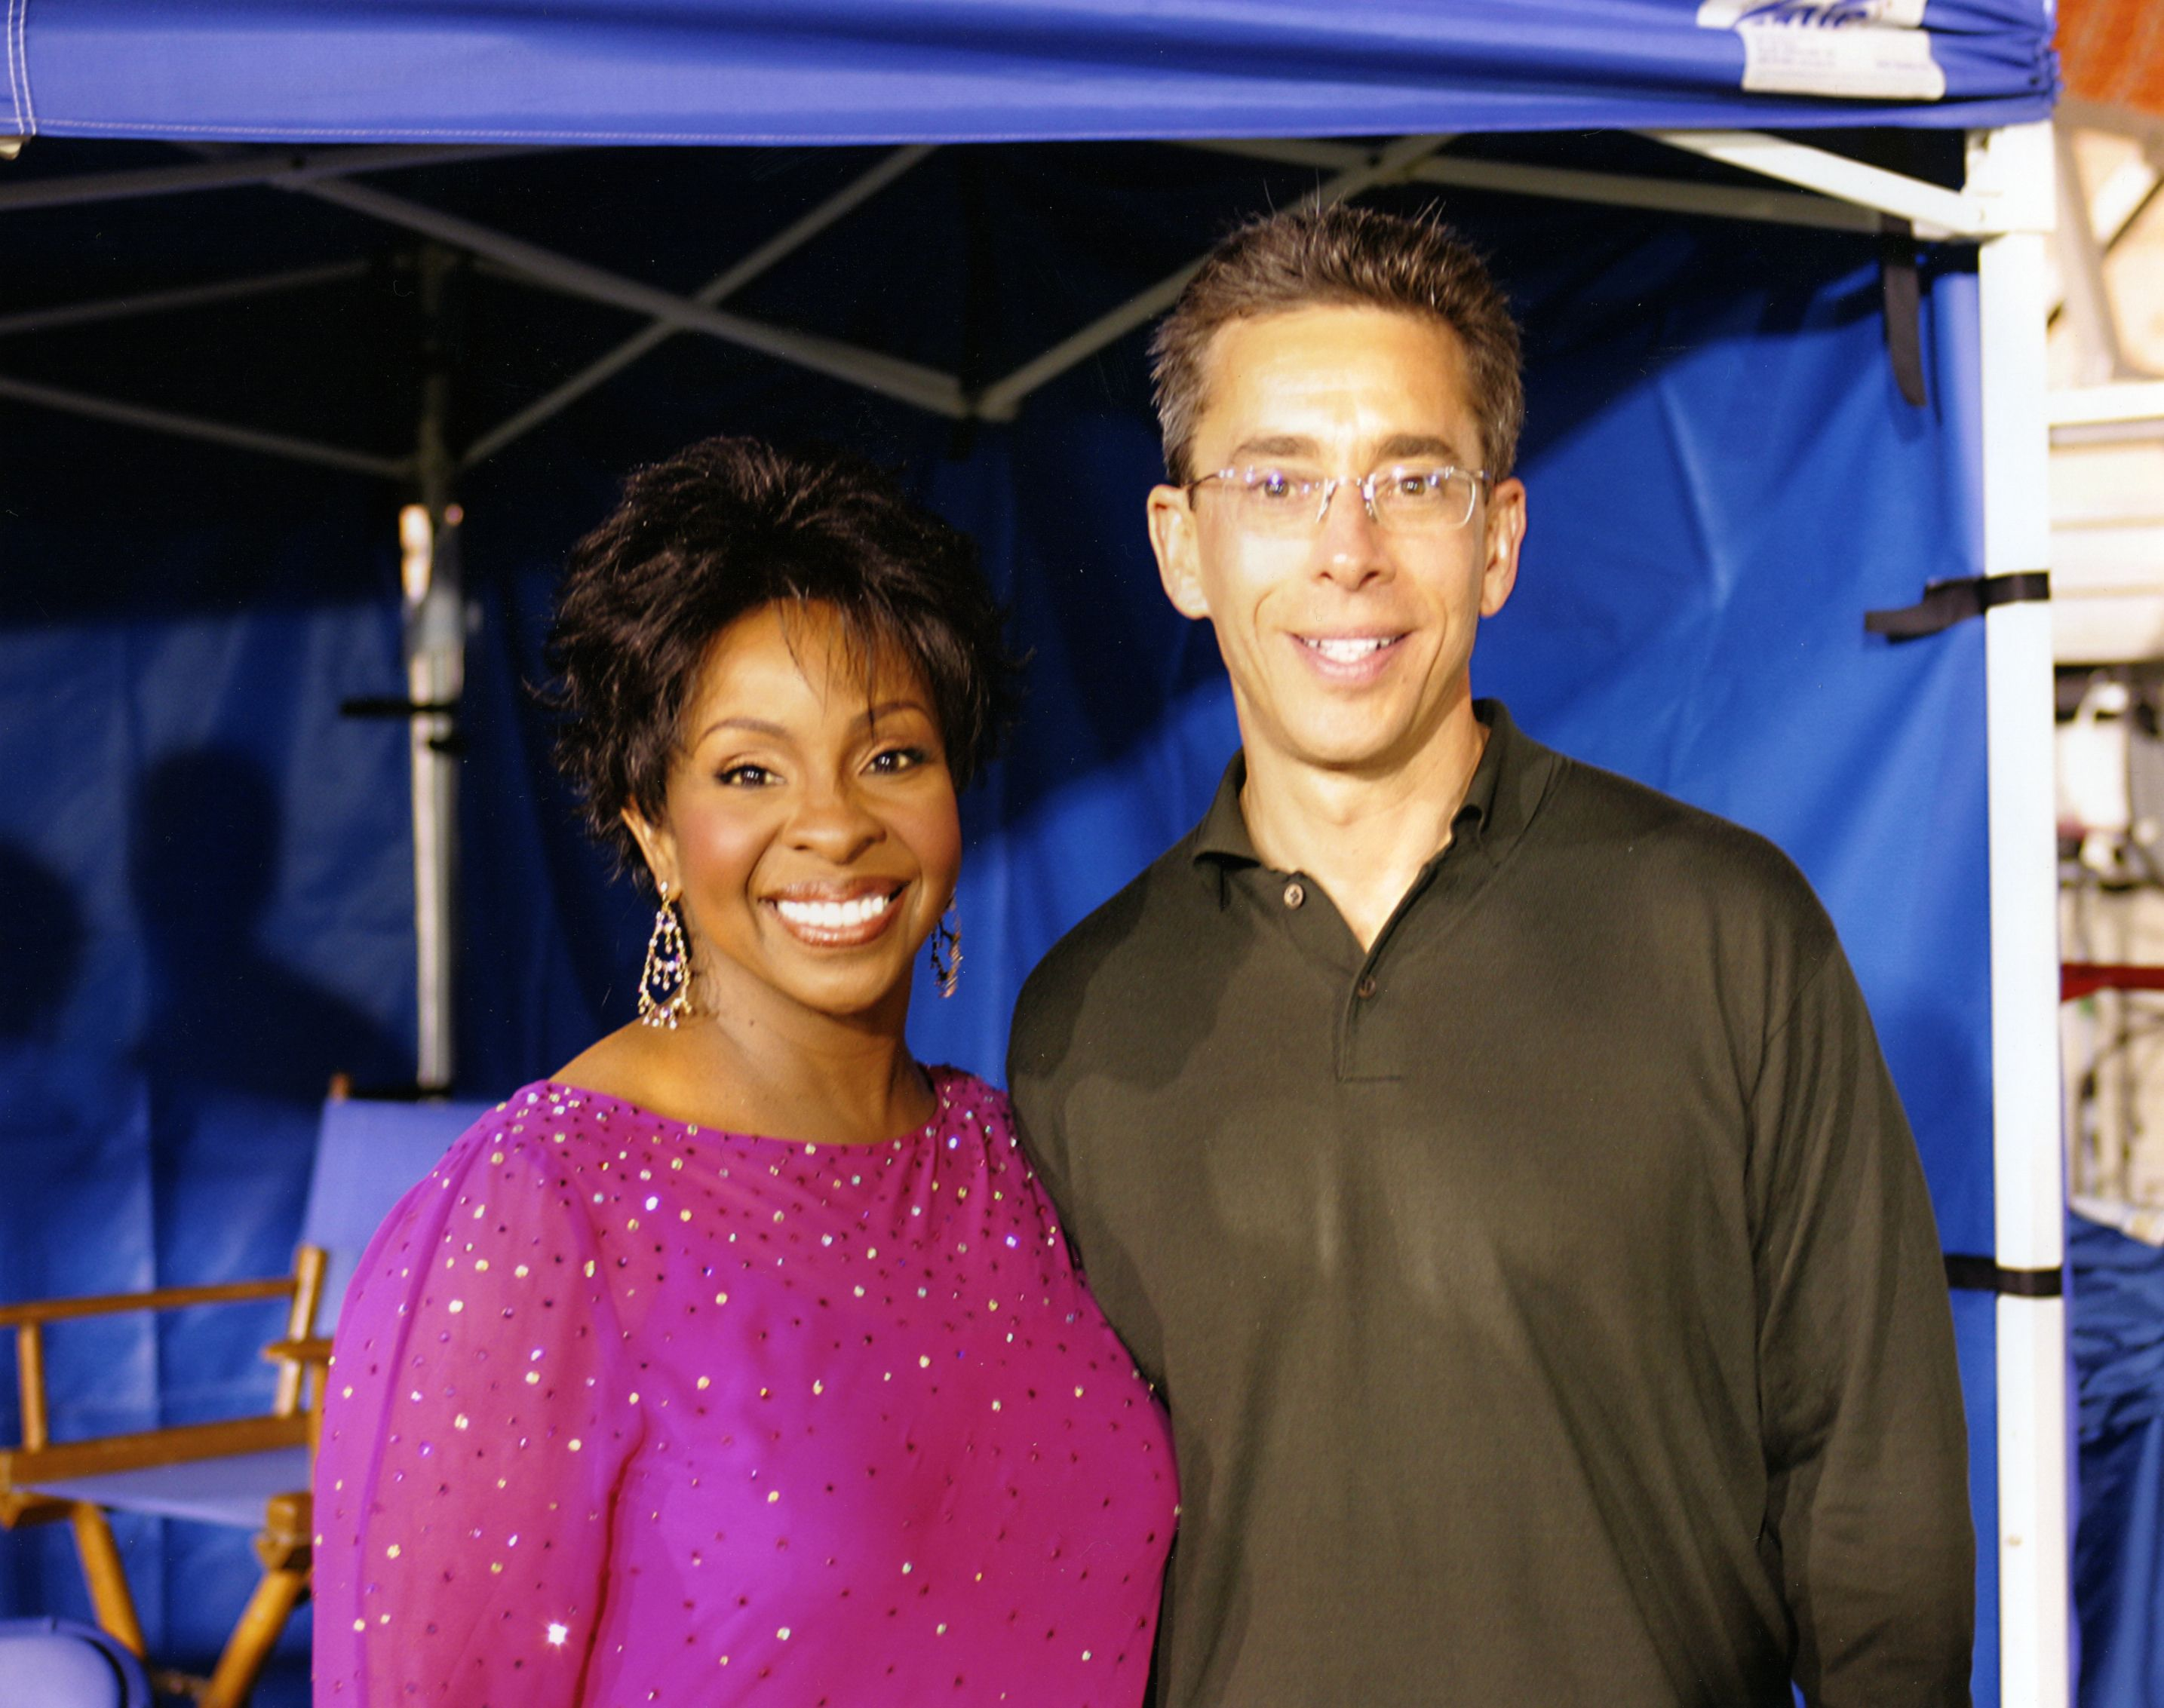 Gladys Knight, star of our spot, and yours truly, shot on the UCLA field that doubled for Twickenham Stadium, home of England Rugby.